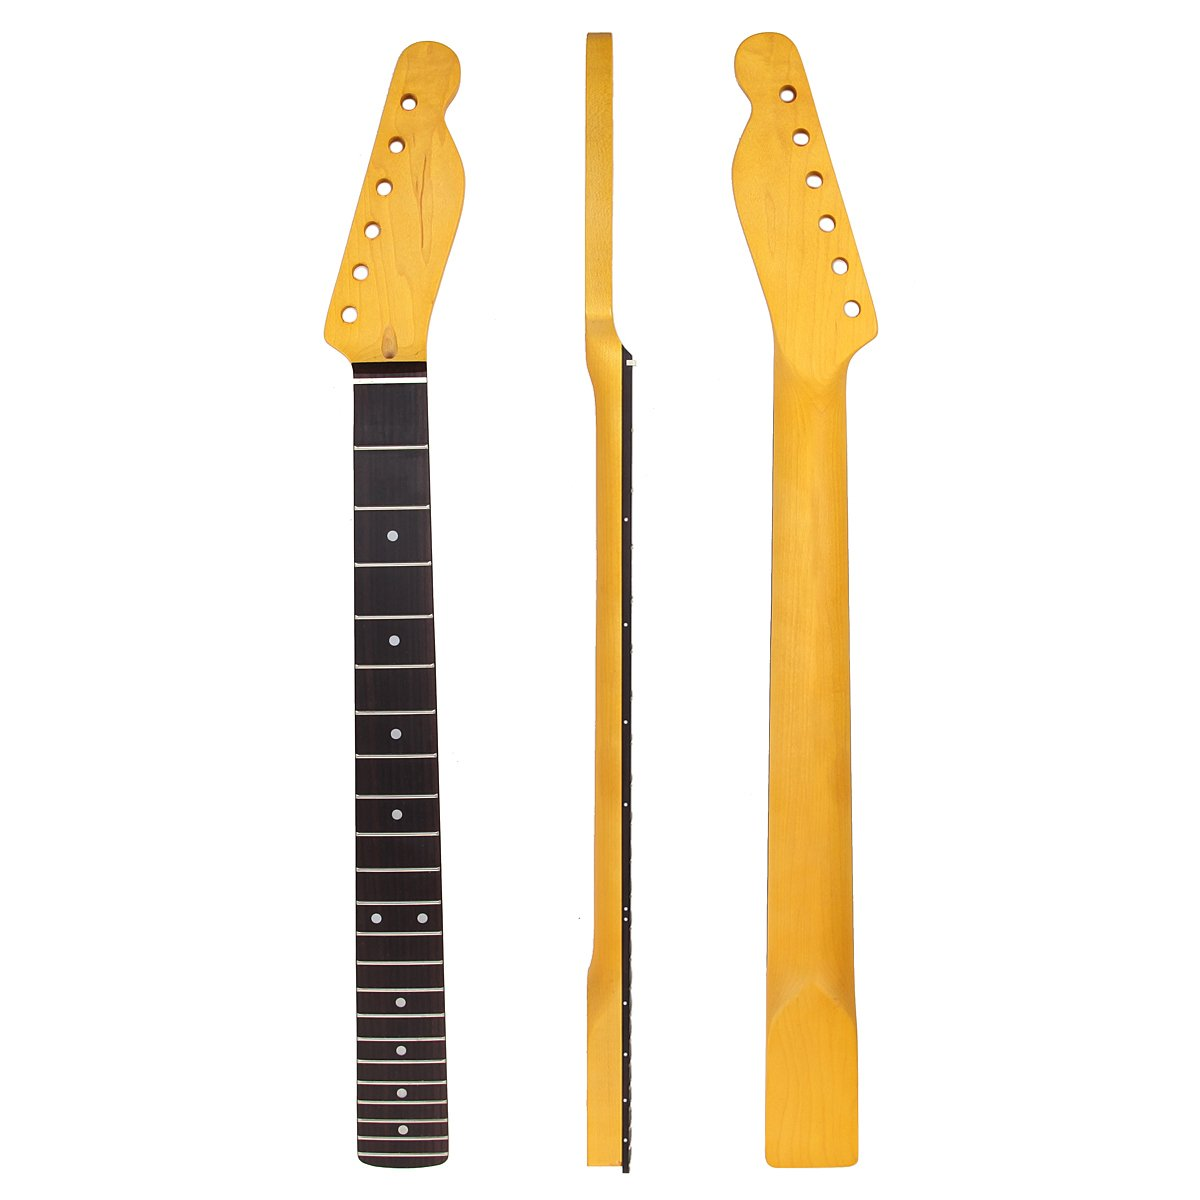 Work Wear & Uniforms 22 Frets Maple Guitar Neck Rosewood Fingerboard Neck For Fender Tele Replacement Guitar Accessories Parts